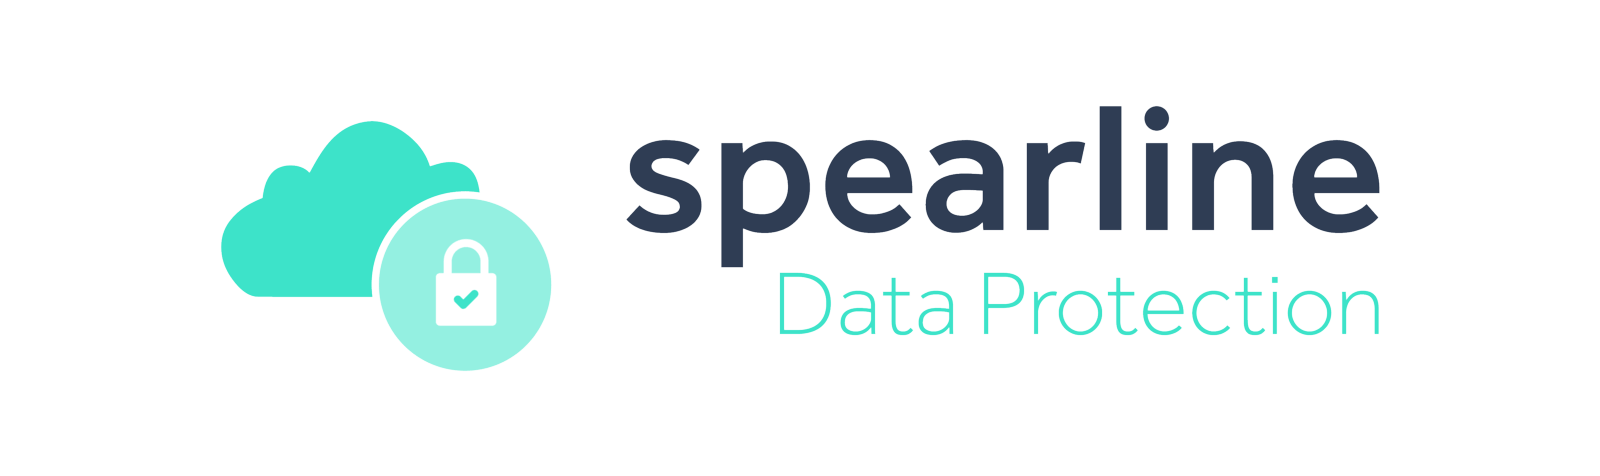 02fa6fefdc Spearline Data Protection will allow you to centralise the management of  your GDPR compliance. It is a workflow tool that gives you a central place  to ...